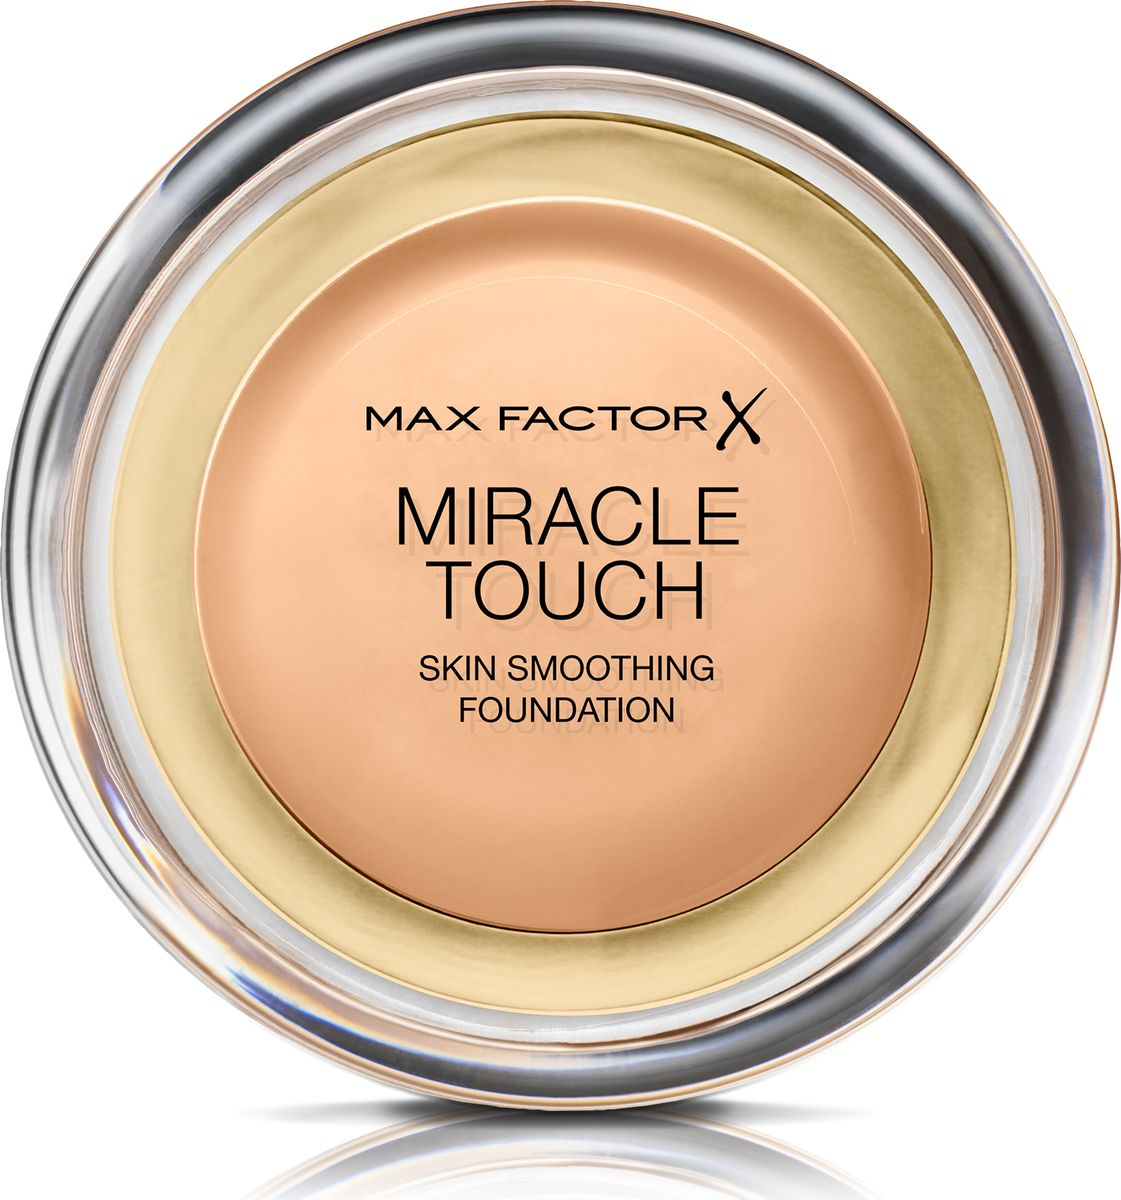 Max Factor Тональная Основа Miracle Touch Тон 75 golden 11,5 гр тональные кремы max factor тональная основа max factor miracle touch тон 45 warm almond